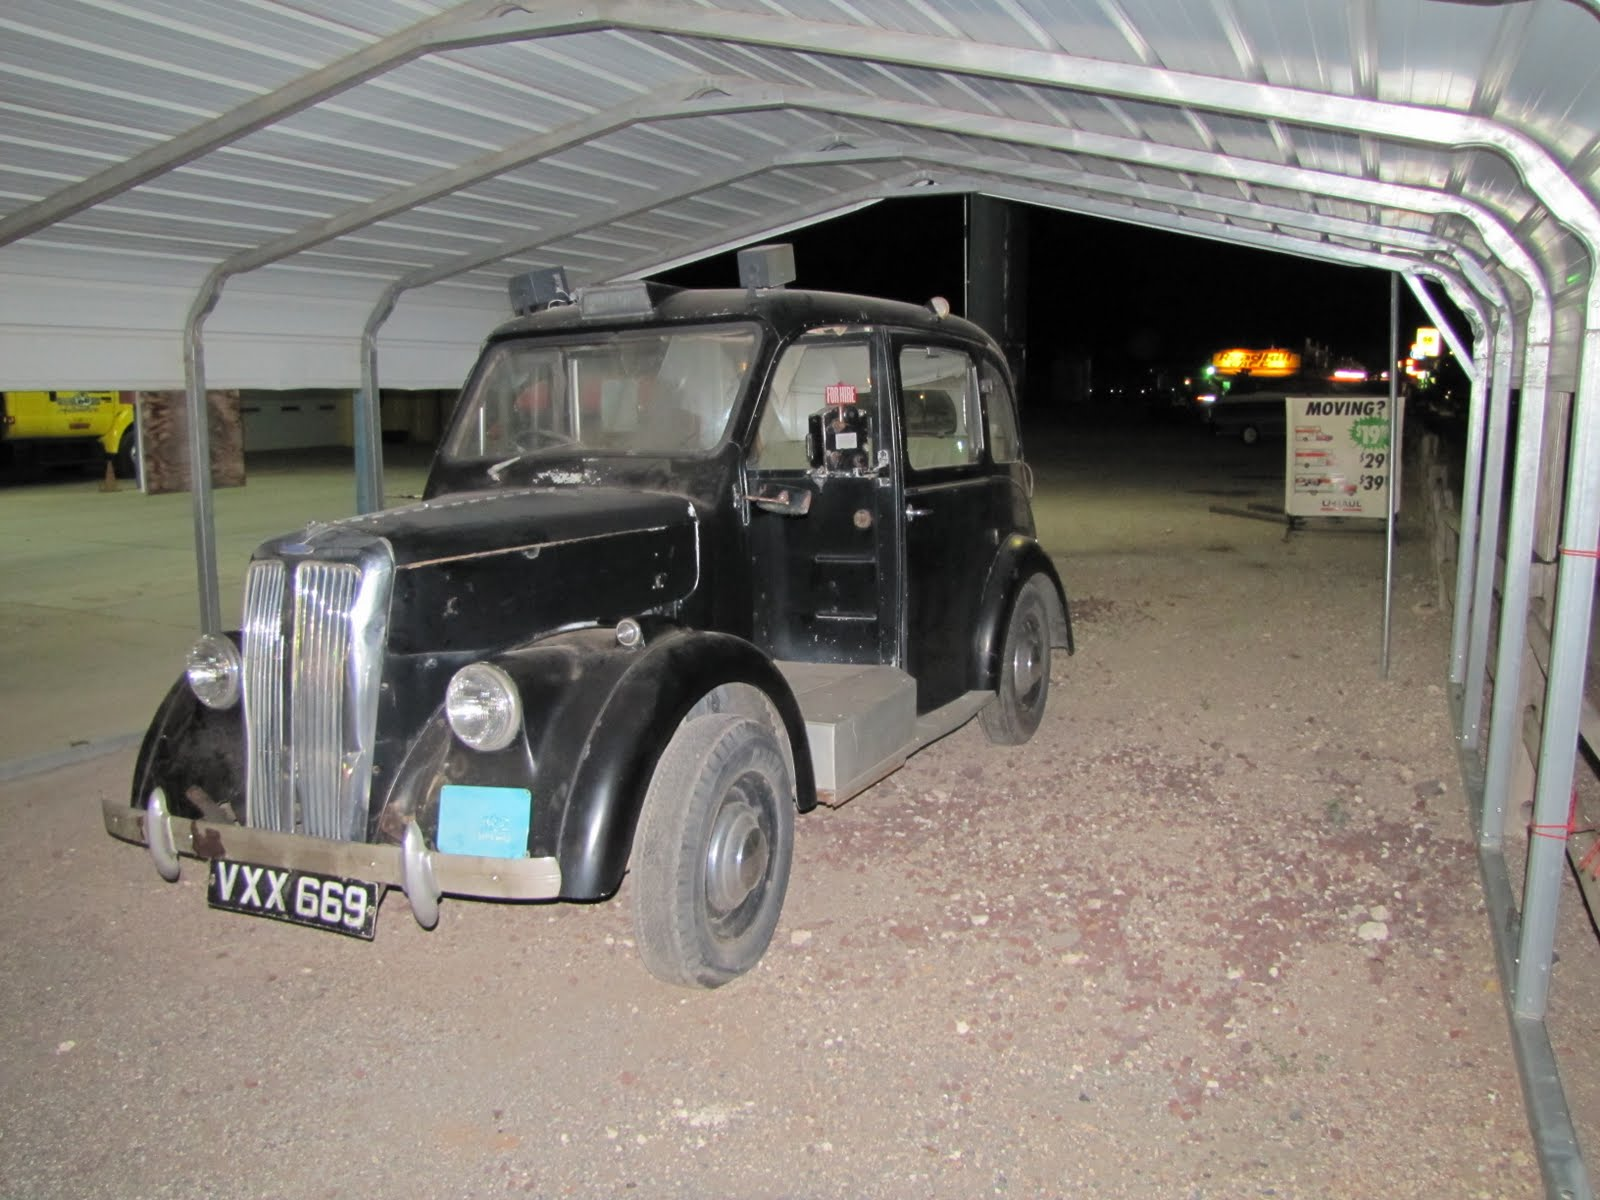 Route 66, Arizona, 1958 Austin FX3 London Taxi